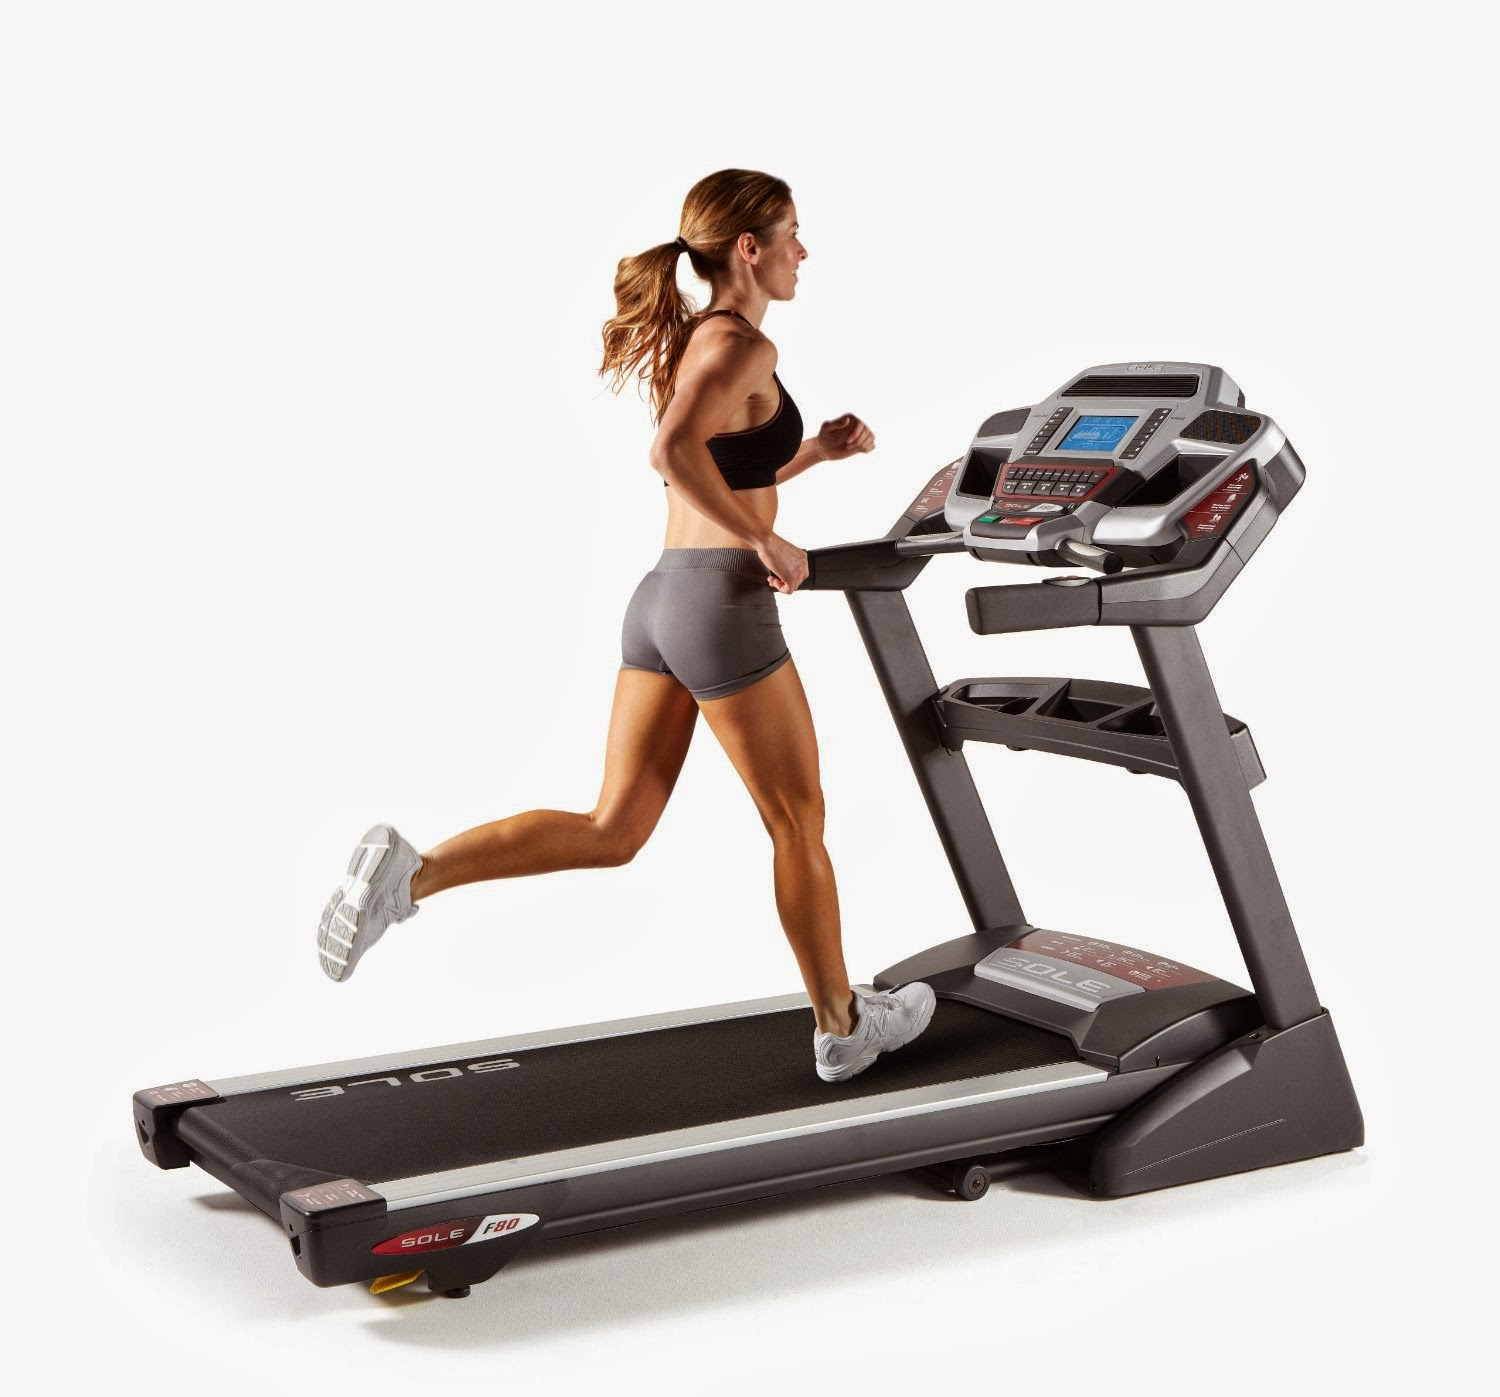 Sole Fitness F80 Treadmill, picture, review features & specifications, compare with Sole Fitness F63